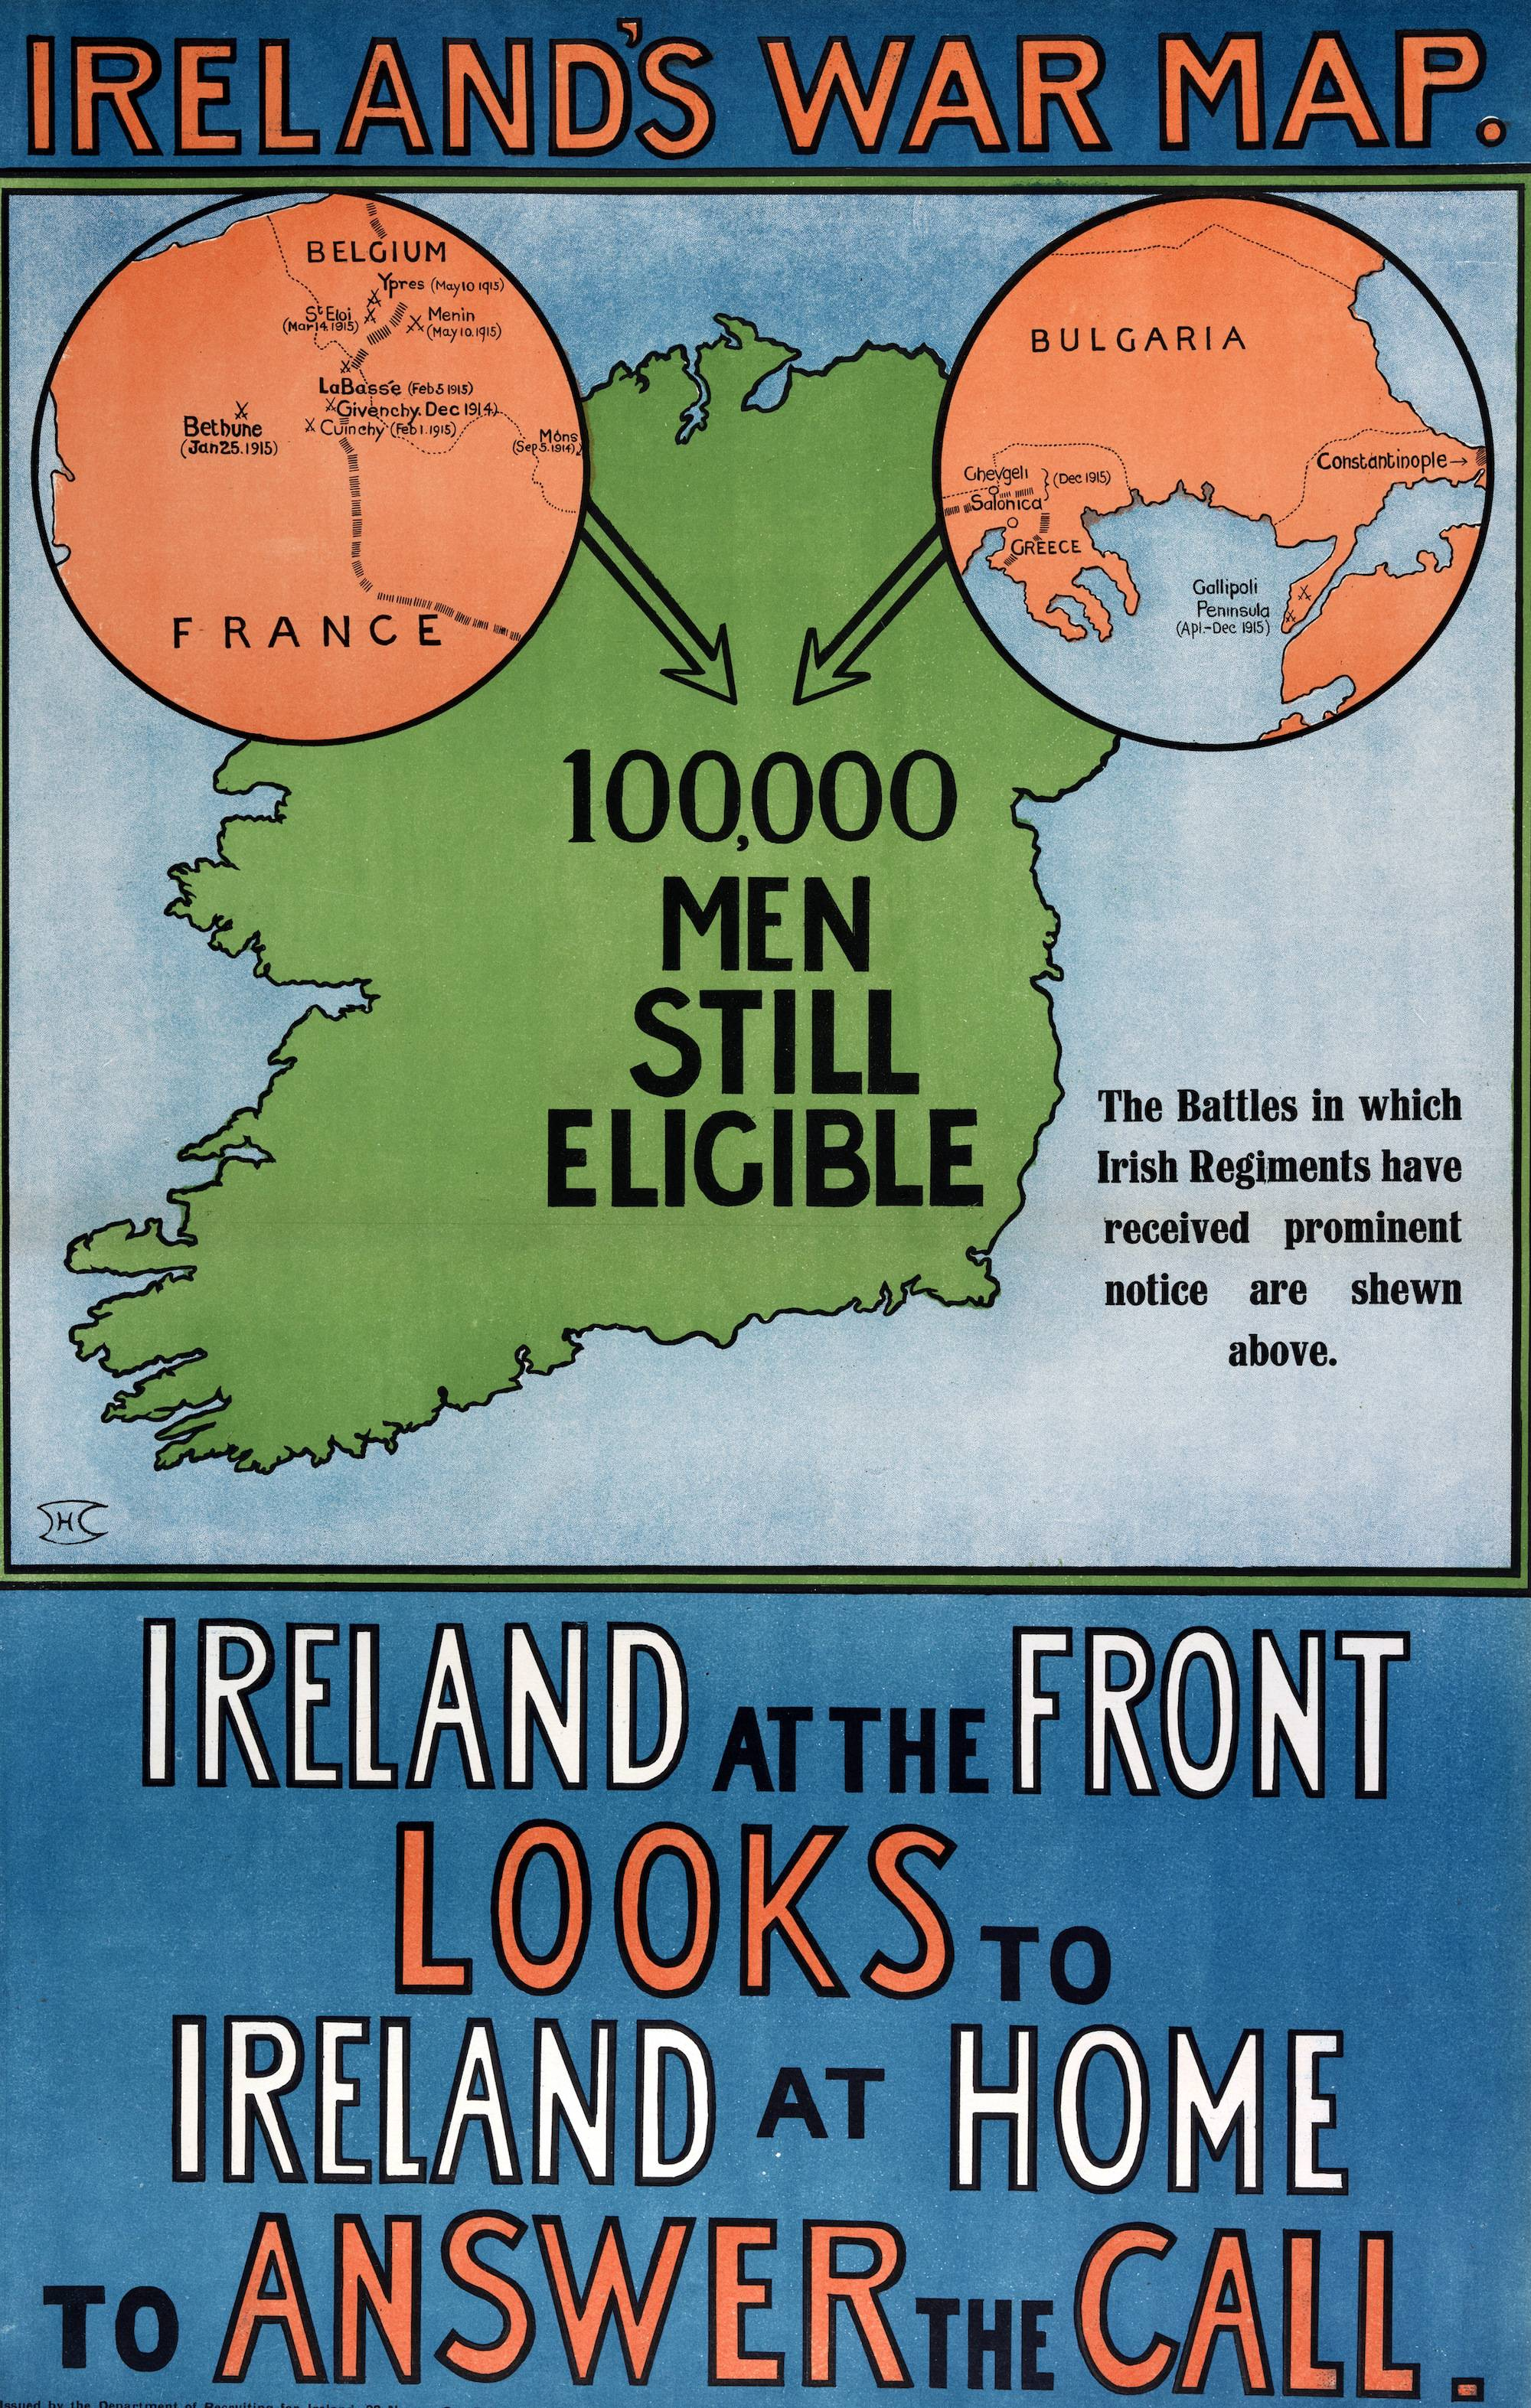 World War I Recruiting Collection: These posters and leaflets were issued by the British Army in Dublin during the war.